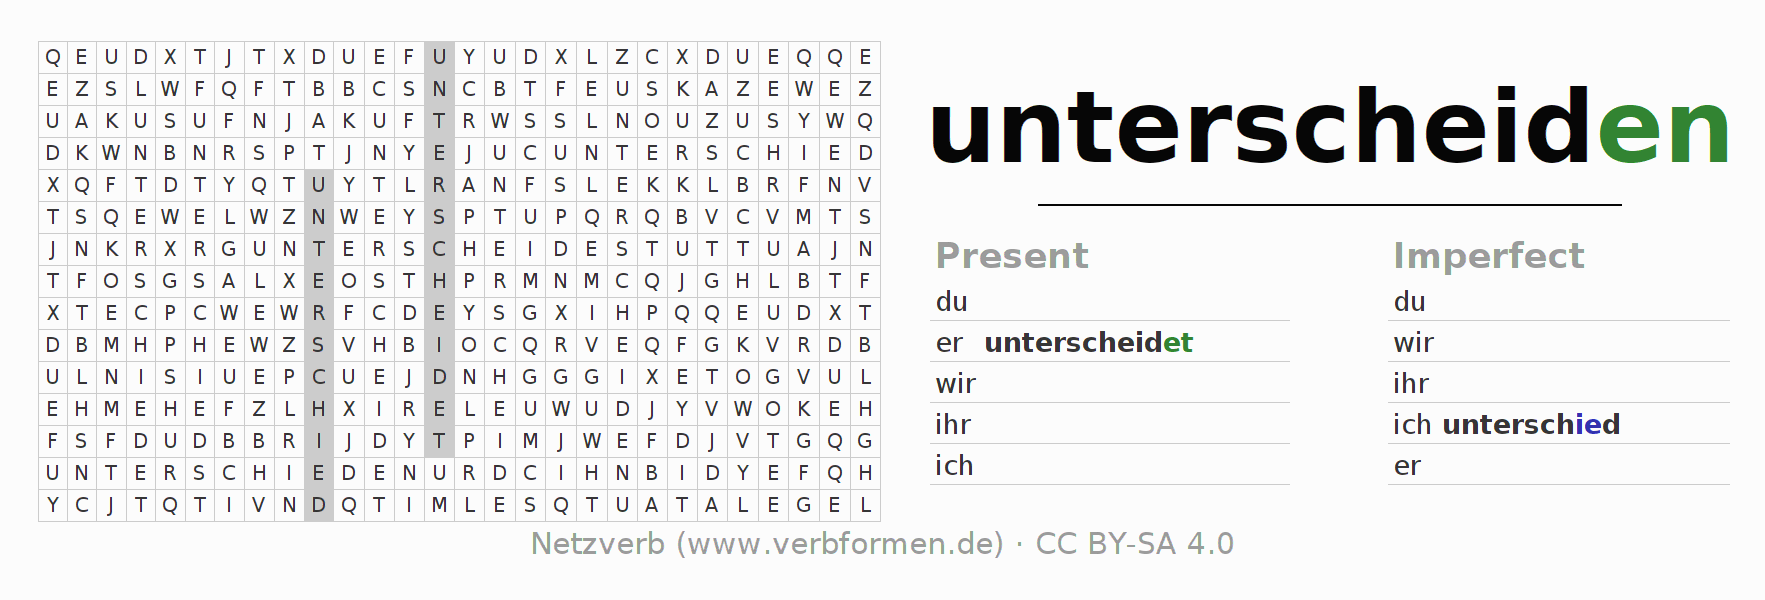 Word search puzzle for the conjugation of the verb unterscheiden